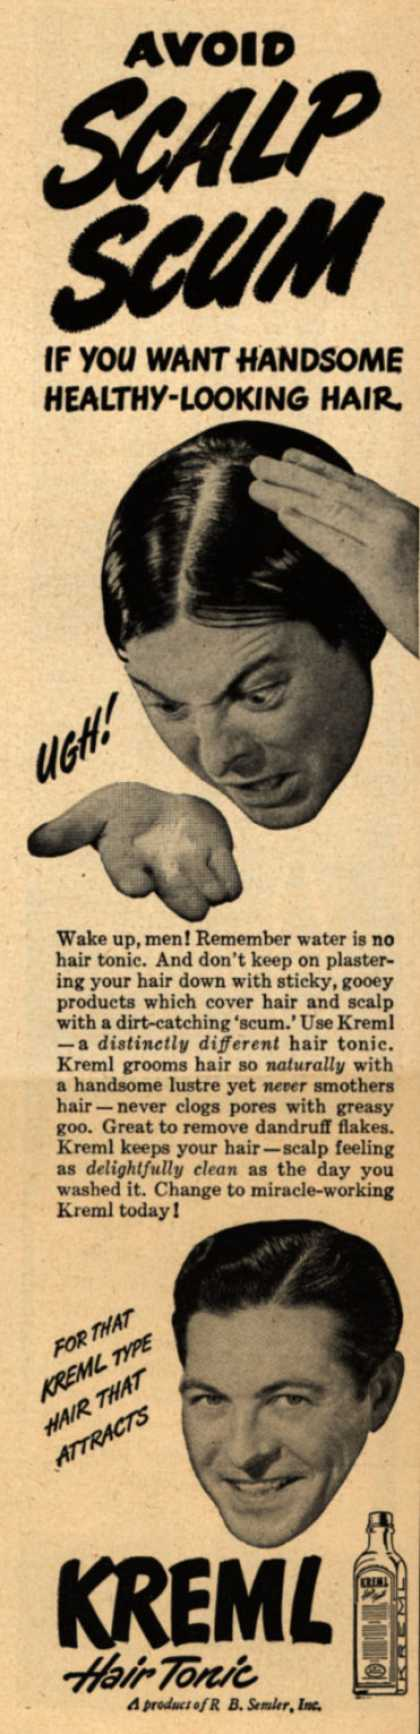 R.B. Semler's hair tonic – Avoid Scalp Scum (1948)